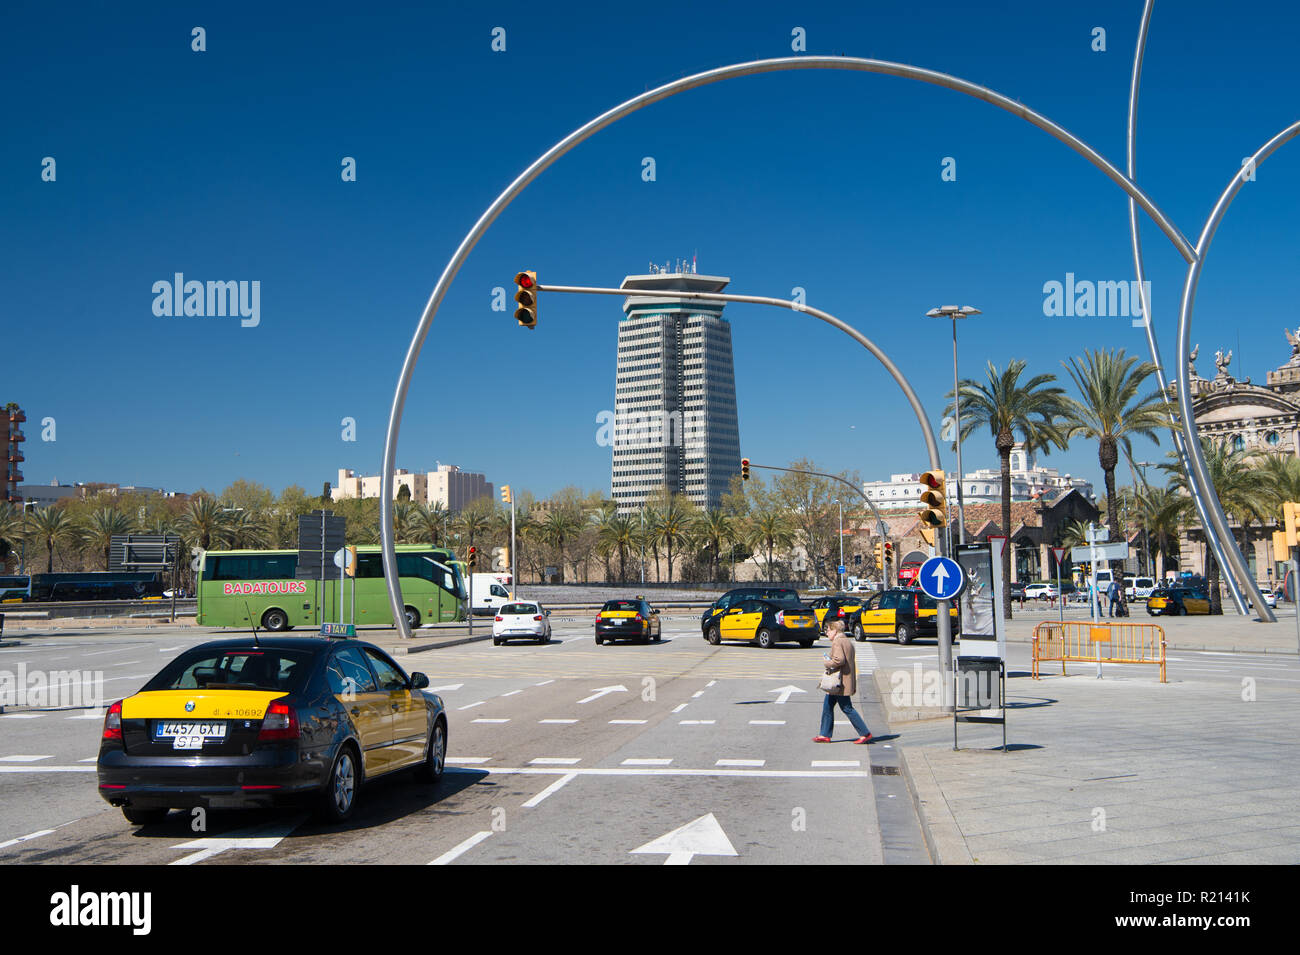 Barcelona, Spain - March 30, 2016: city crossroad and crosswalk with traffic lights. Intersection. Urban road. Town buildings on blue sky. Transportation in traffic jam. Travelling and wanderlust. - Stock Image